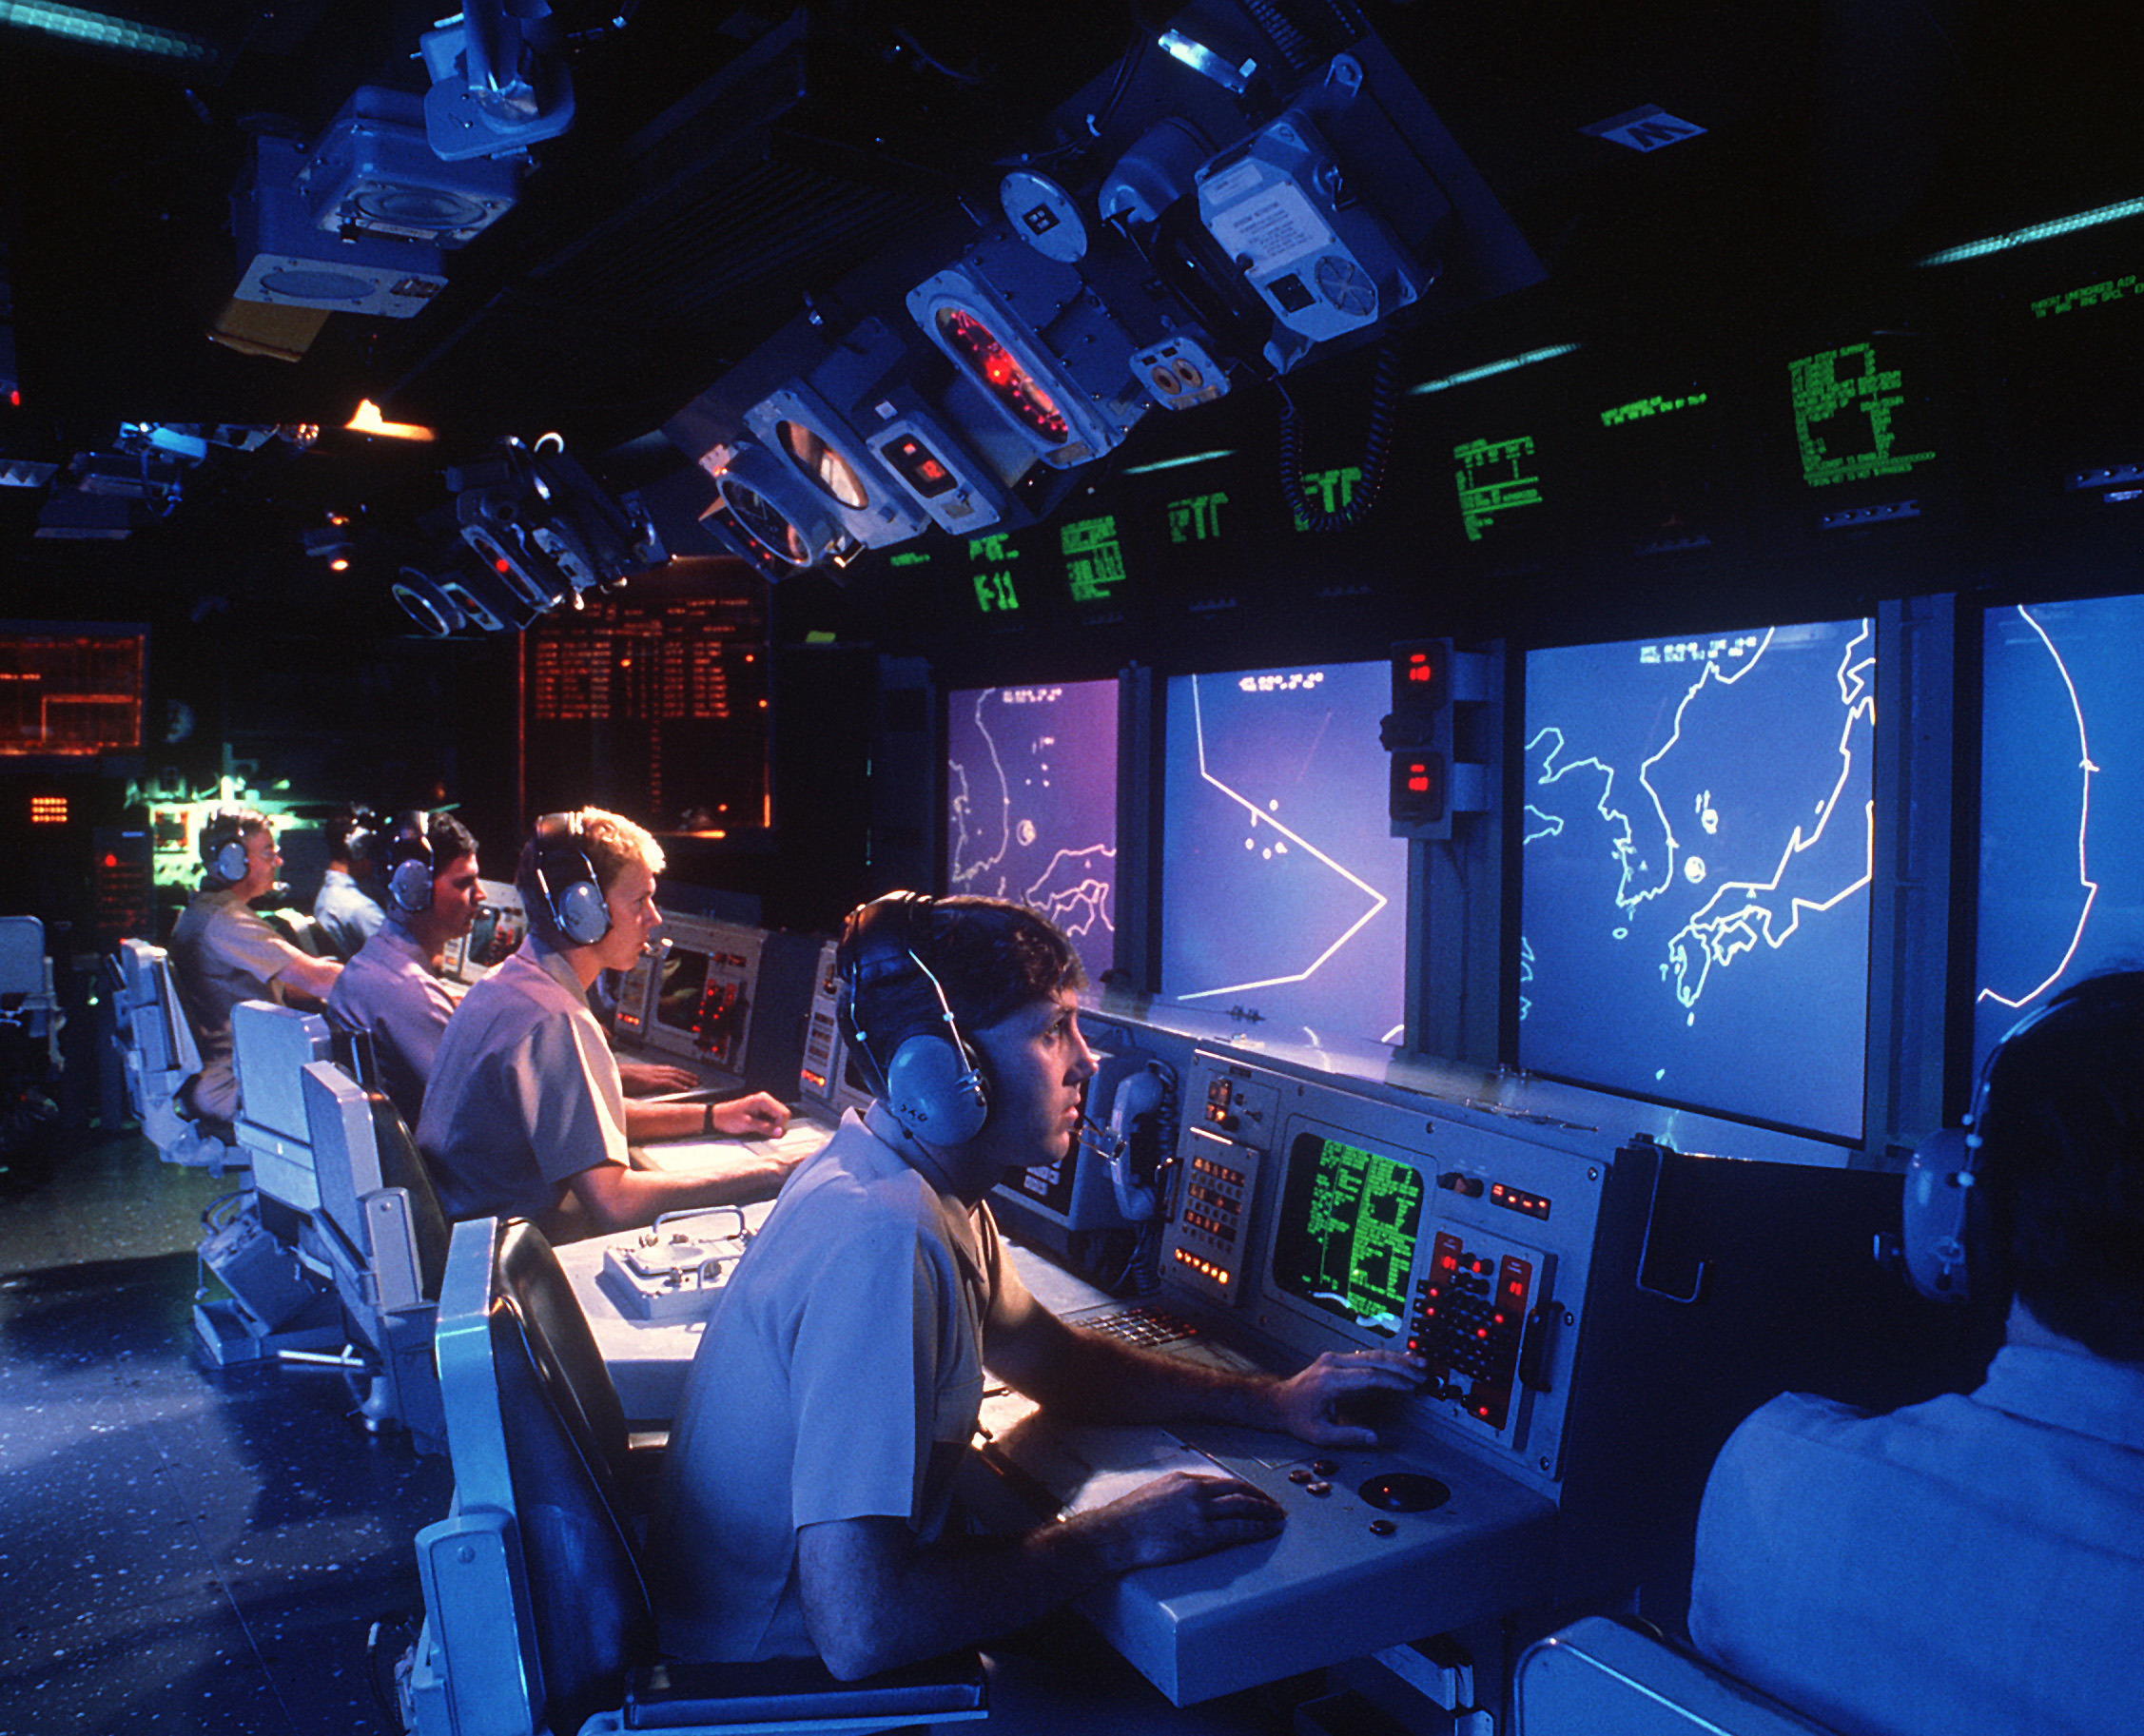 http://upload.wikimedia.org/wikipedia/commons/8/81/USS_Vincennes_%28CG-49%29_Aegis_large_screen_displays.jpg